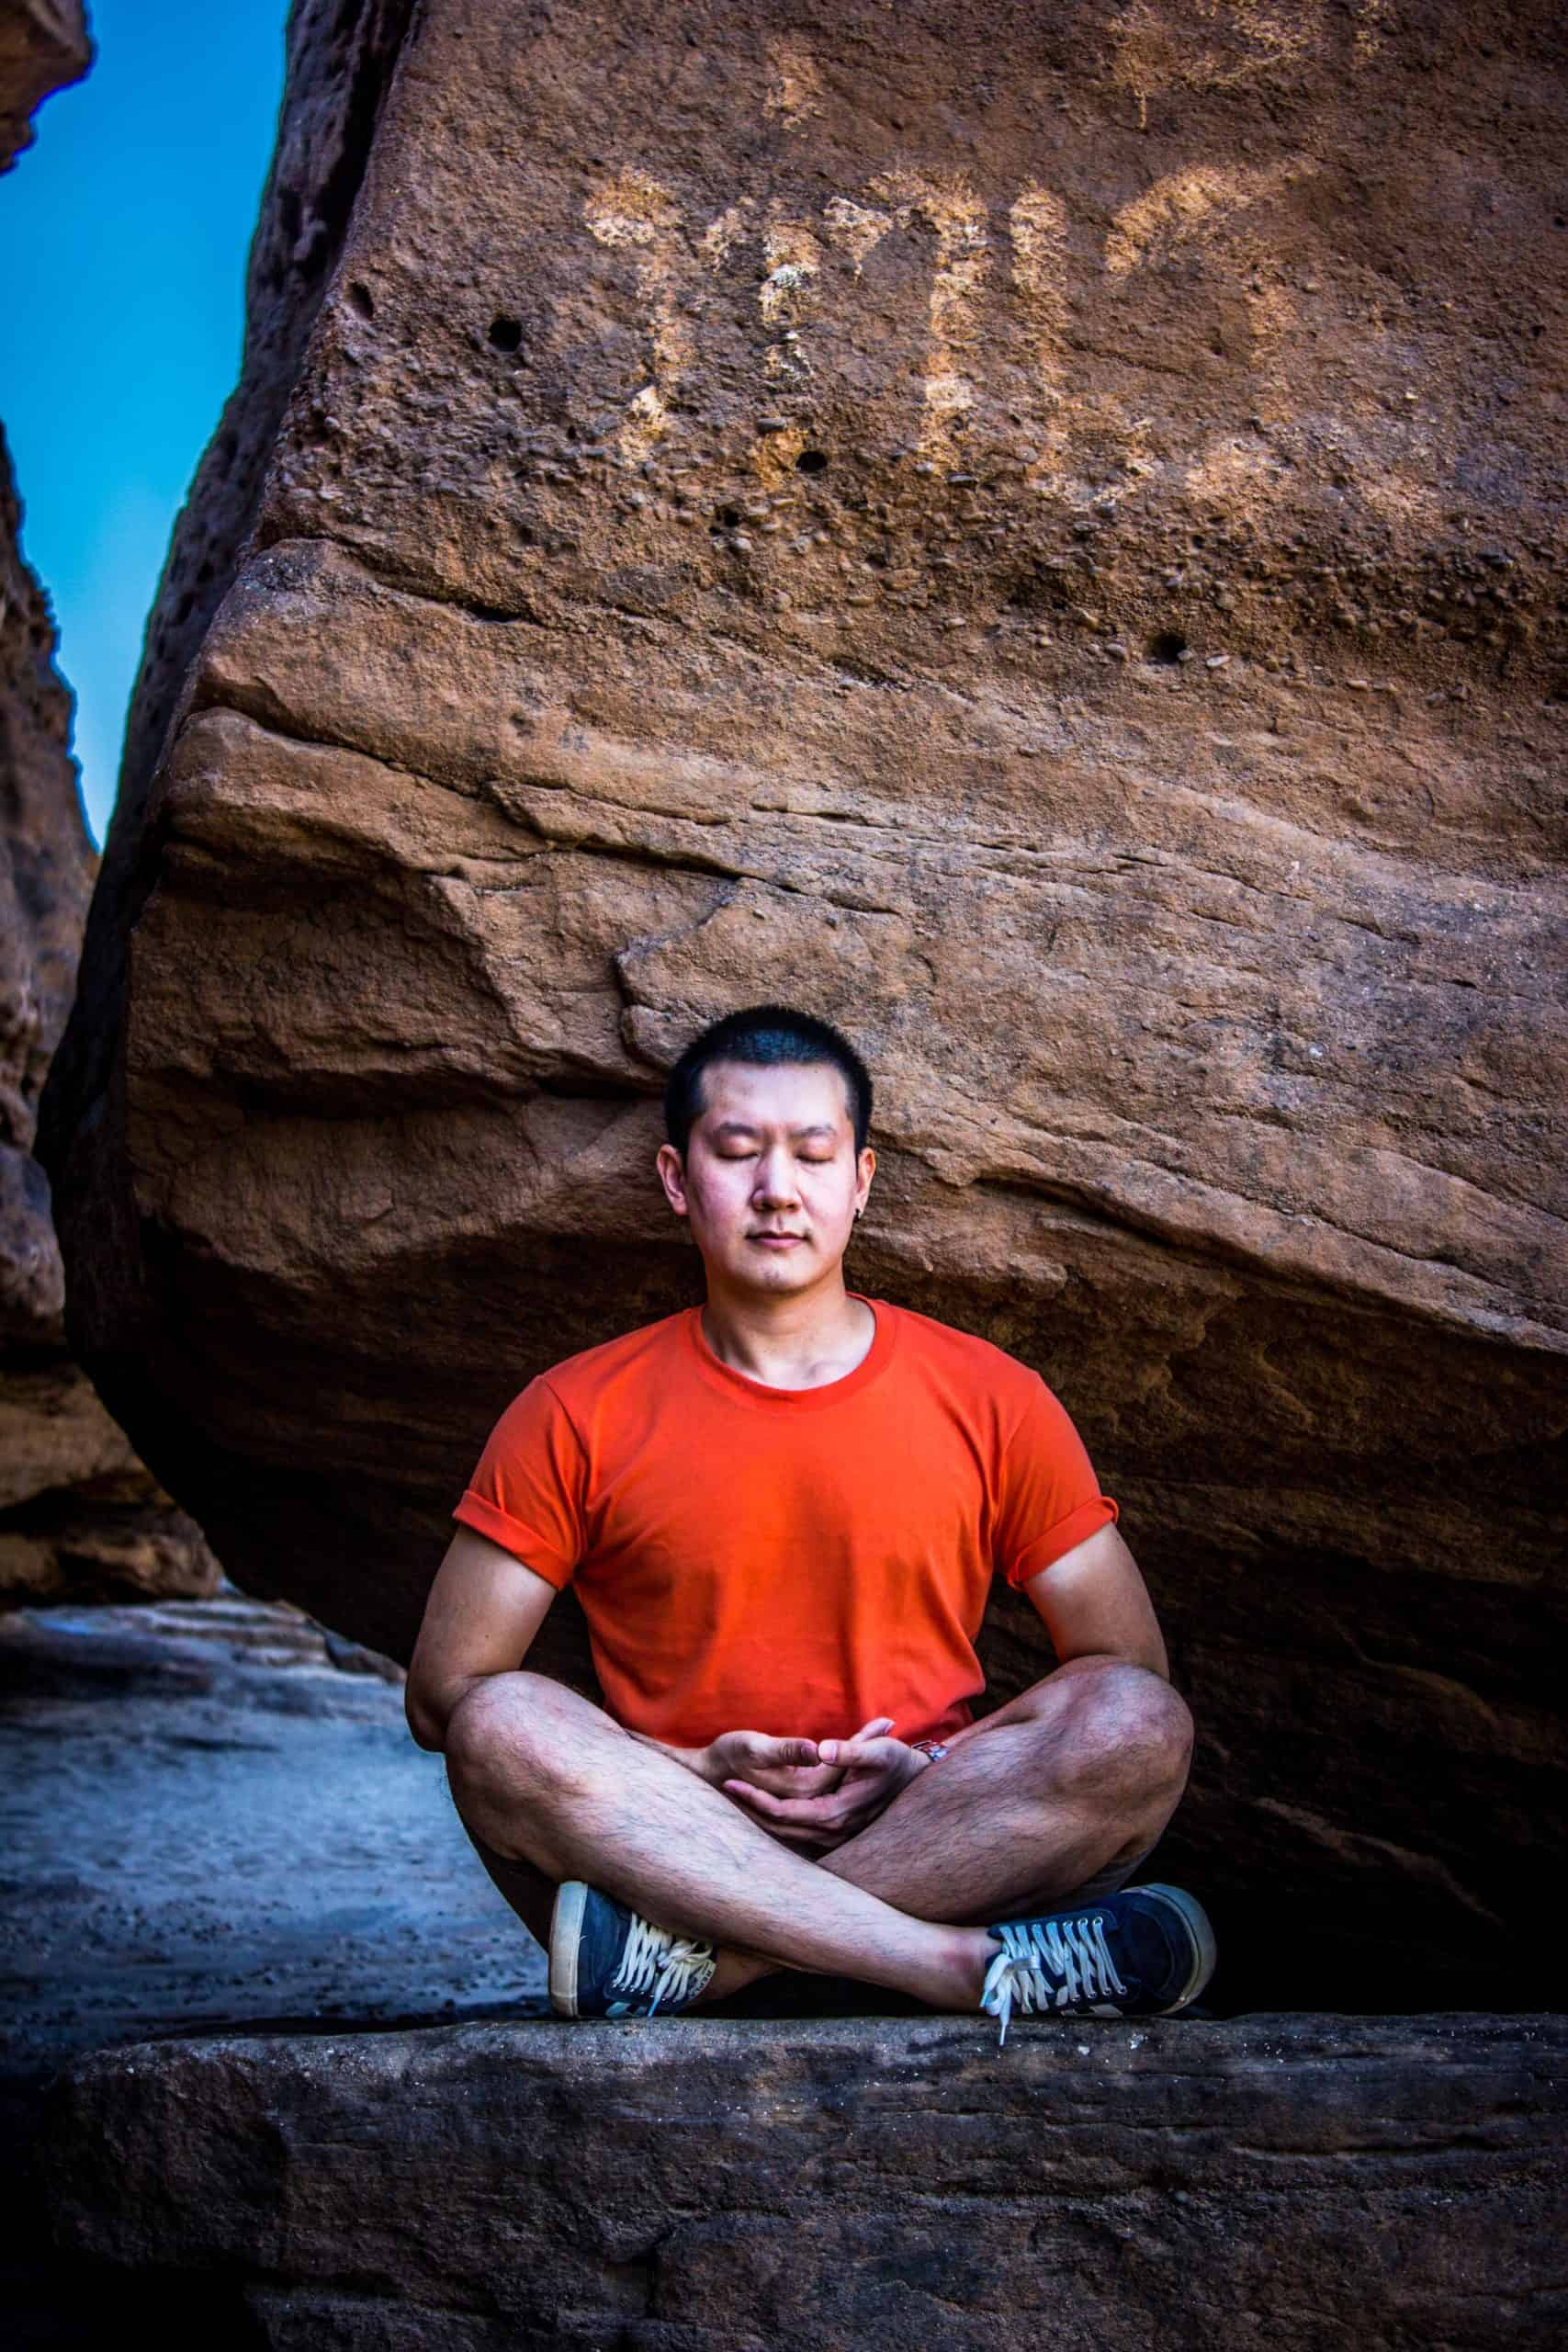 Meditation Tips To Gain Greater Freedom From Your Worries